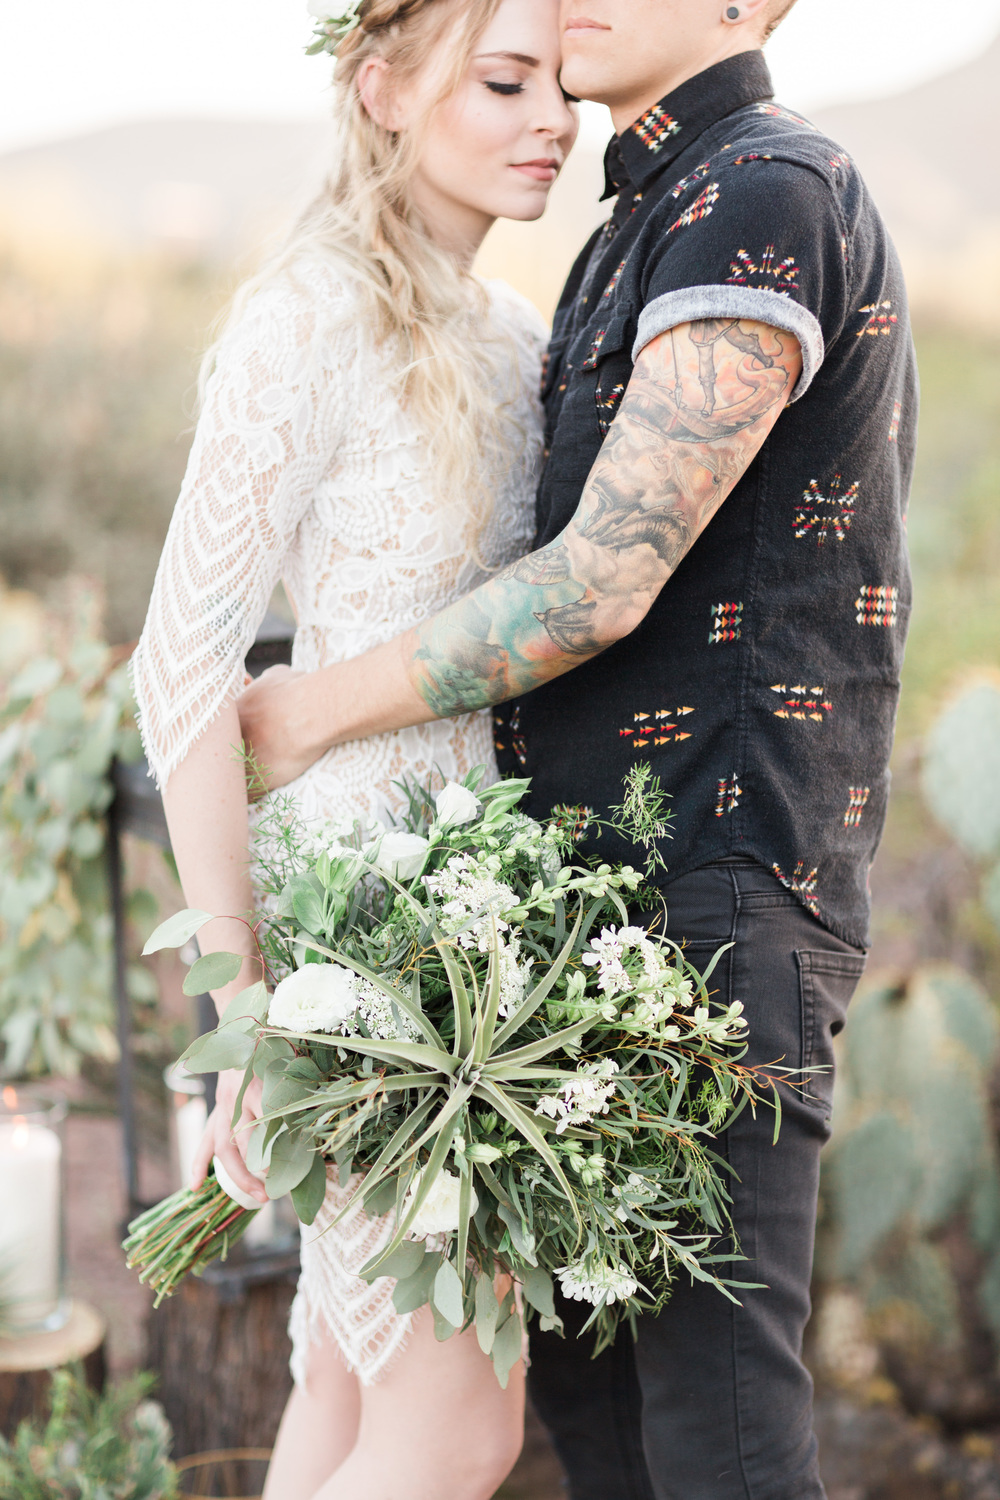 hipster groom hugging his bride who is holding a gorgeous green and white bouquet